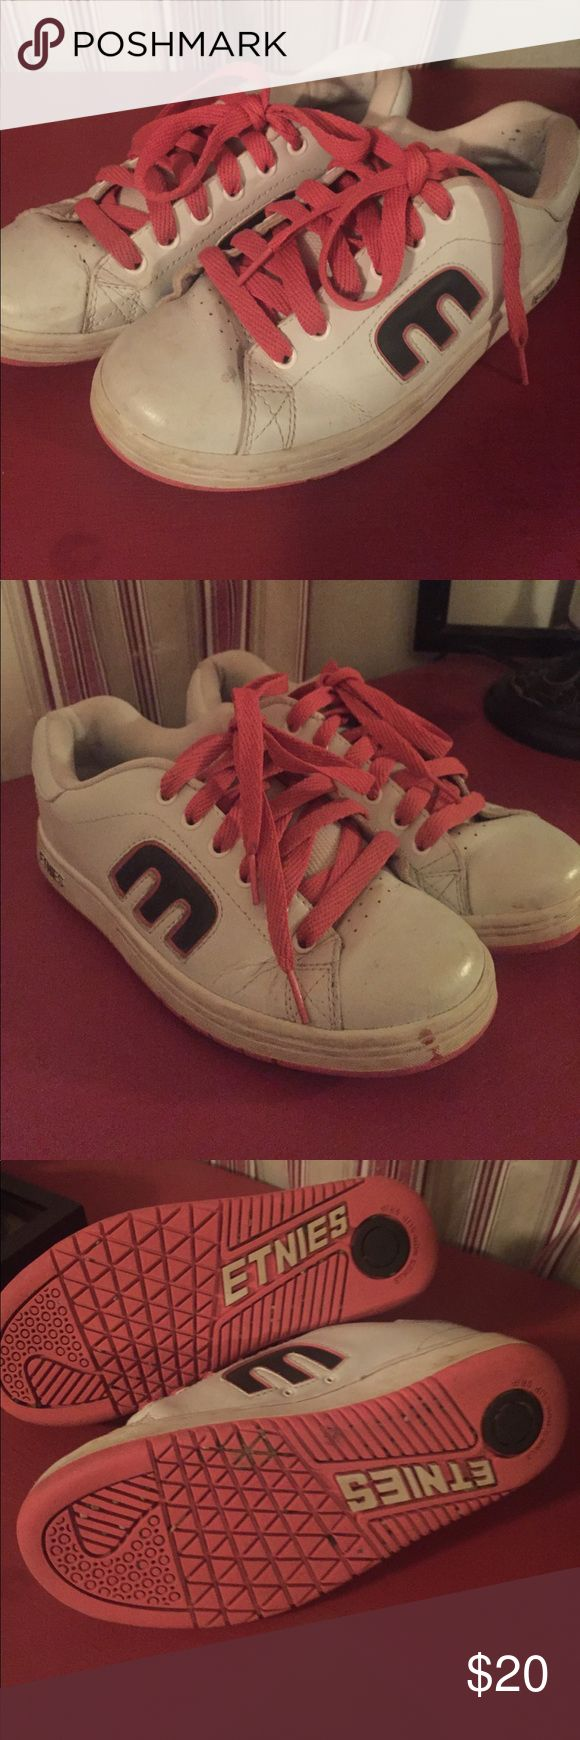 Pink and white Etnies skate shoe Size 7.5 women's Etnies skate shoe. White shoe with pink laces. In used condition but lots of life left. Etnies Shoes Athletic Shoes